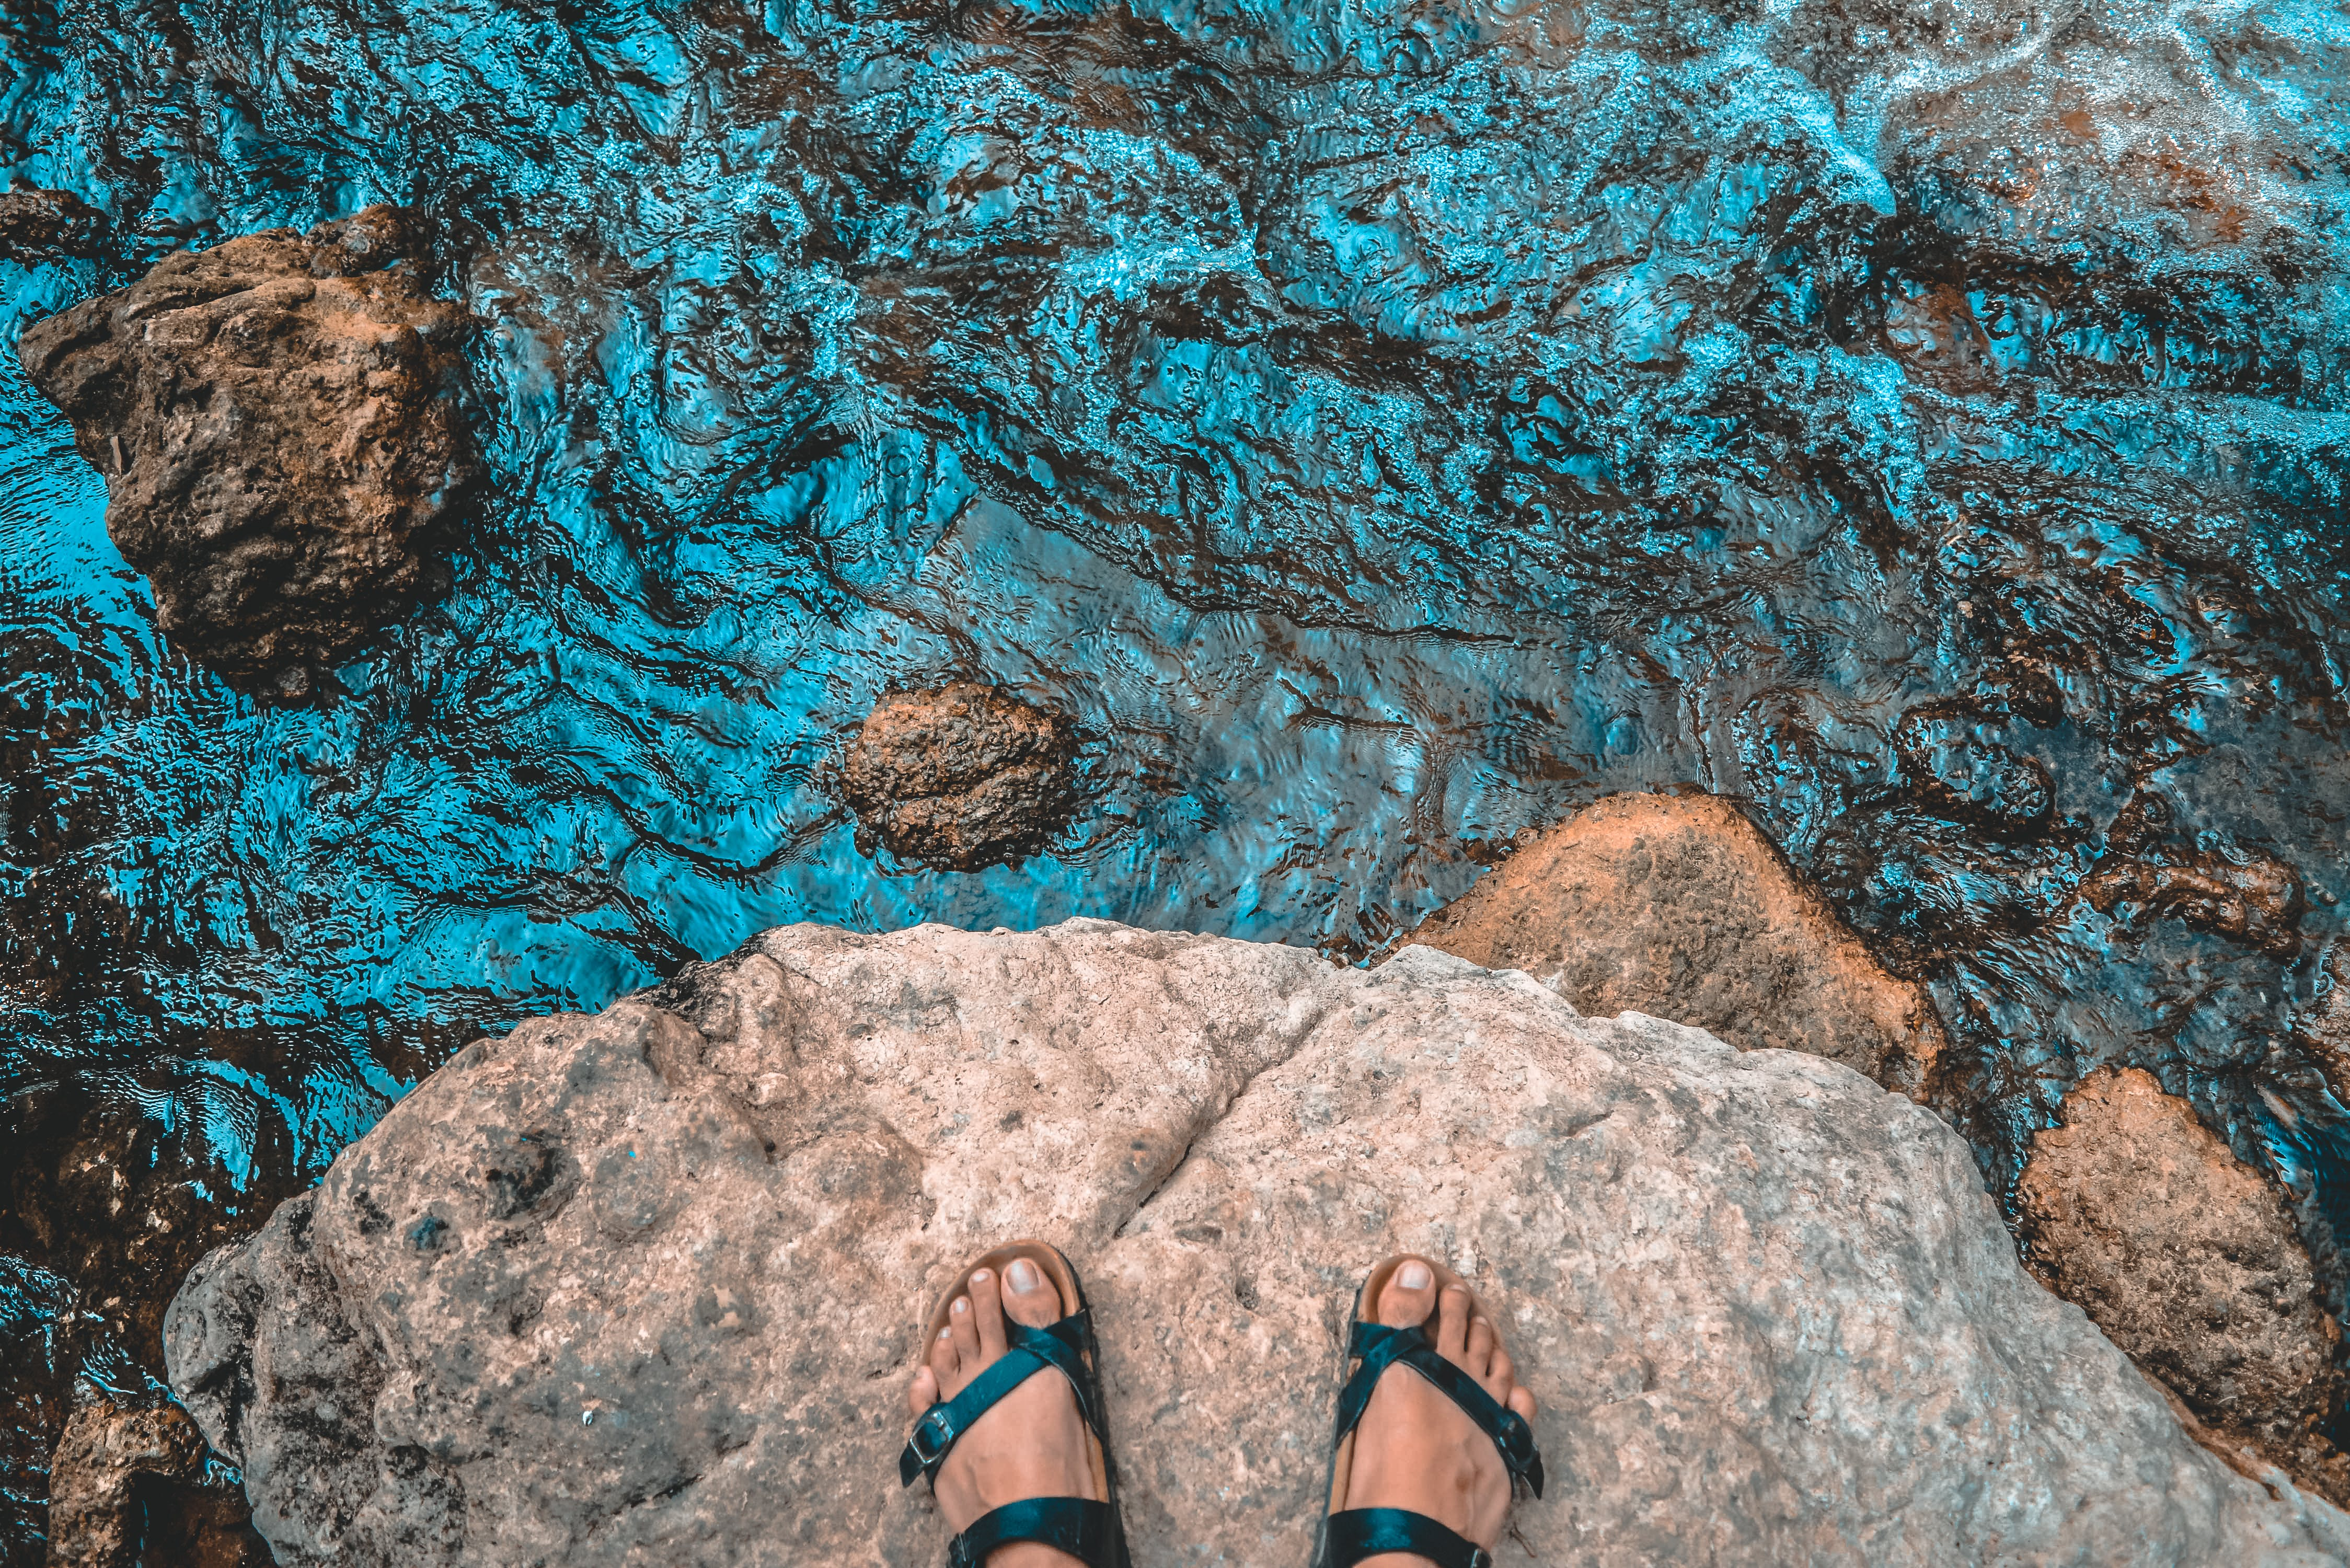 Free stock photo of #outdoorchallenge, adventure, blue water, footsteps